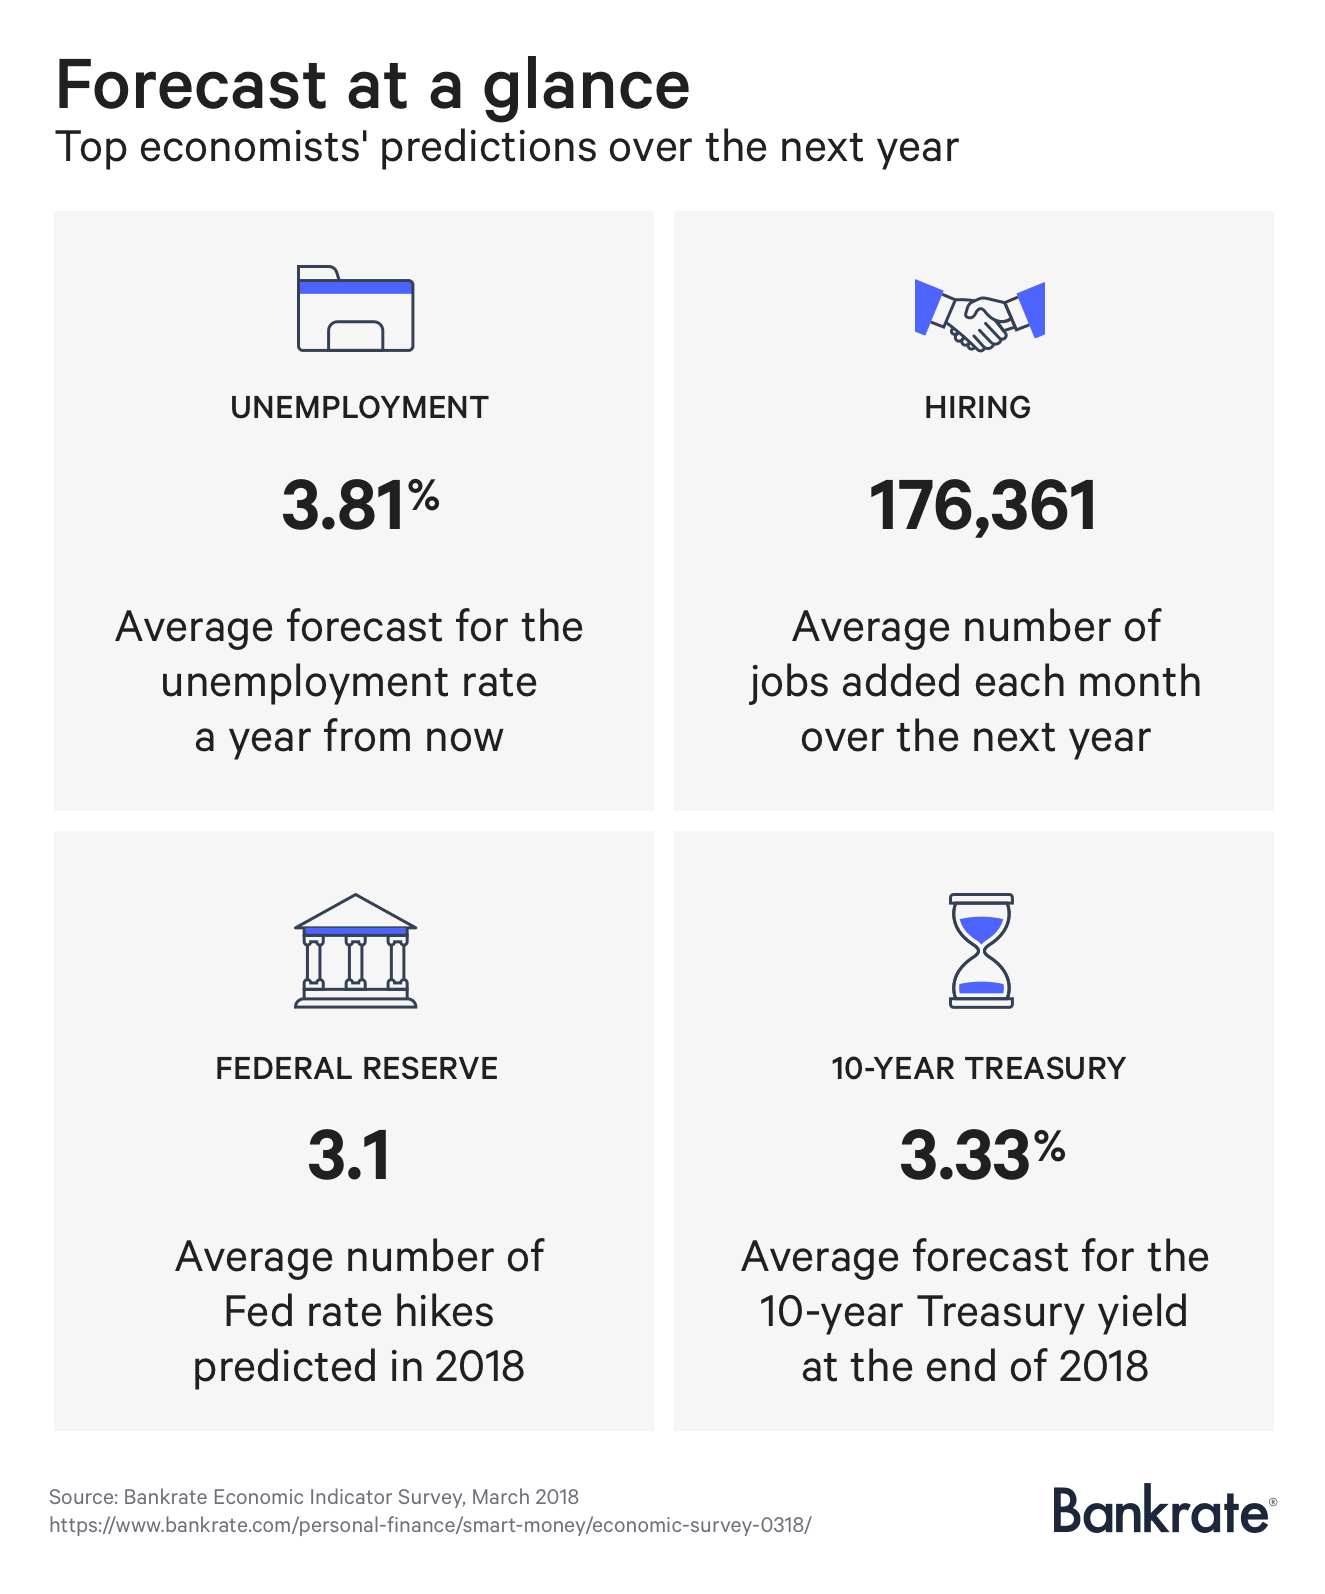 Bankrate Economic Indicator Survey, March 2018